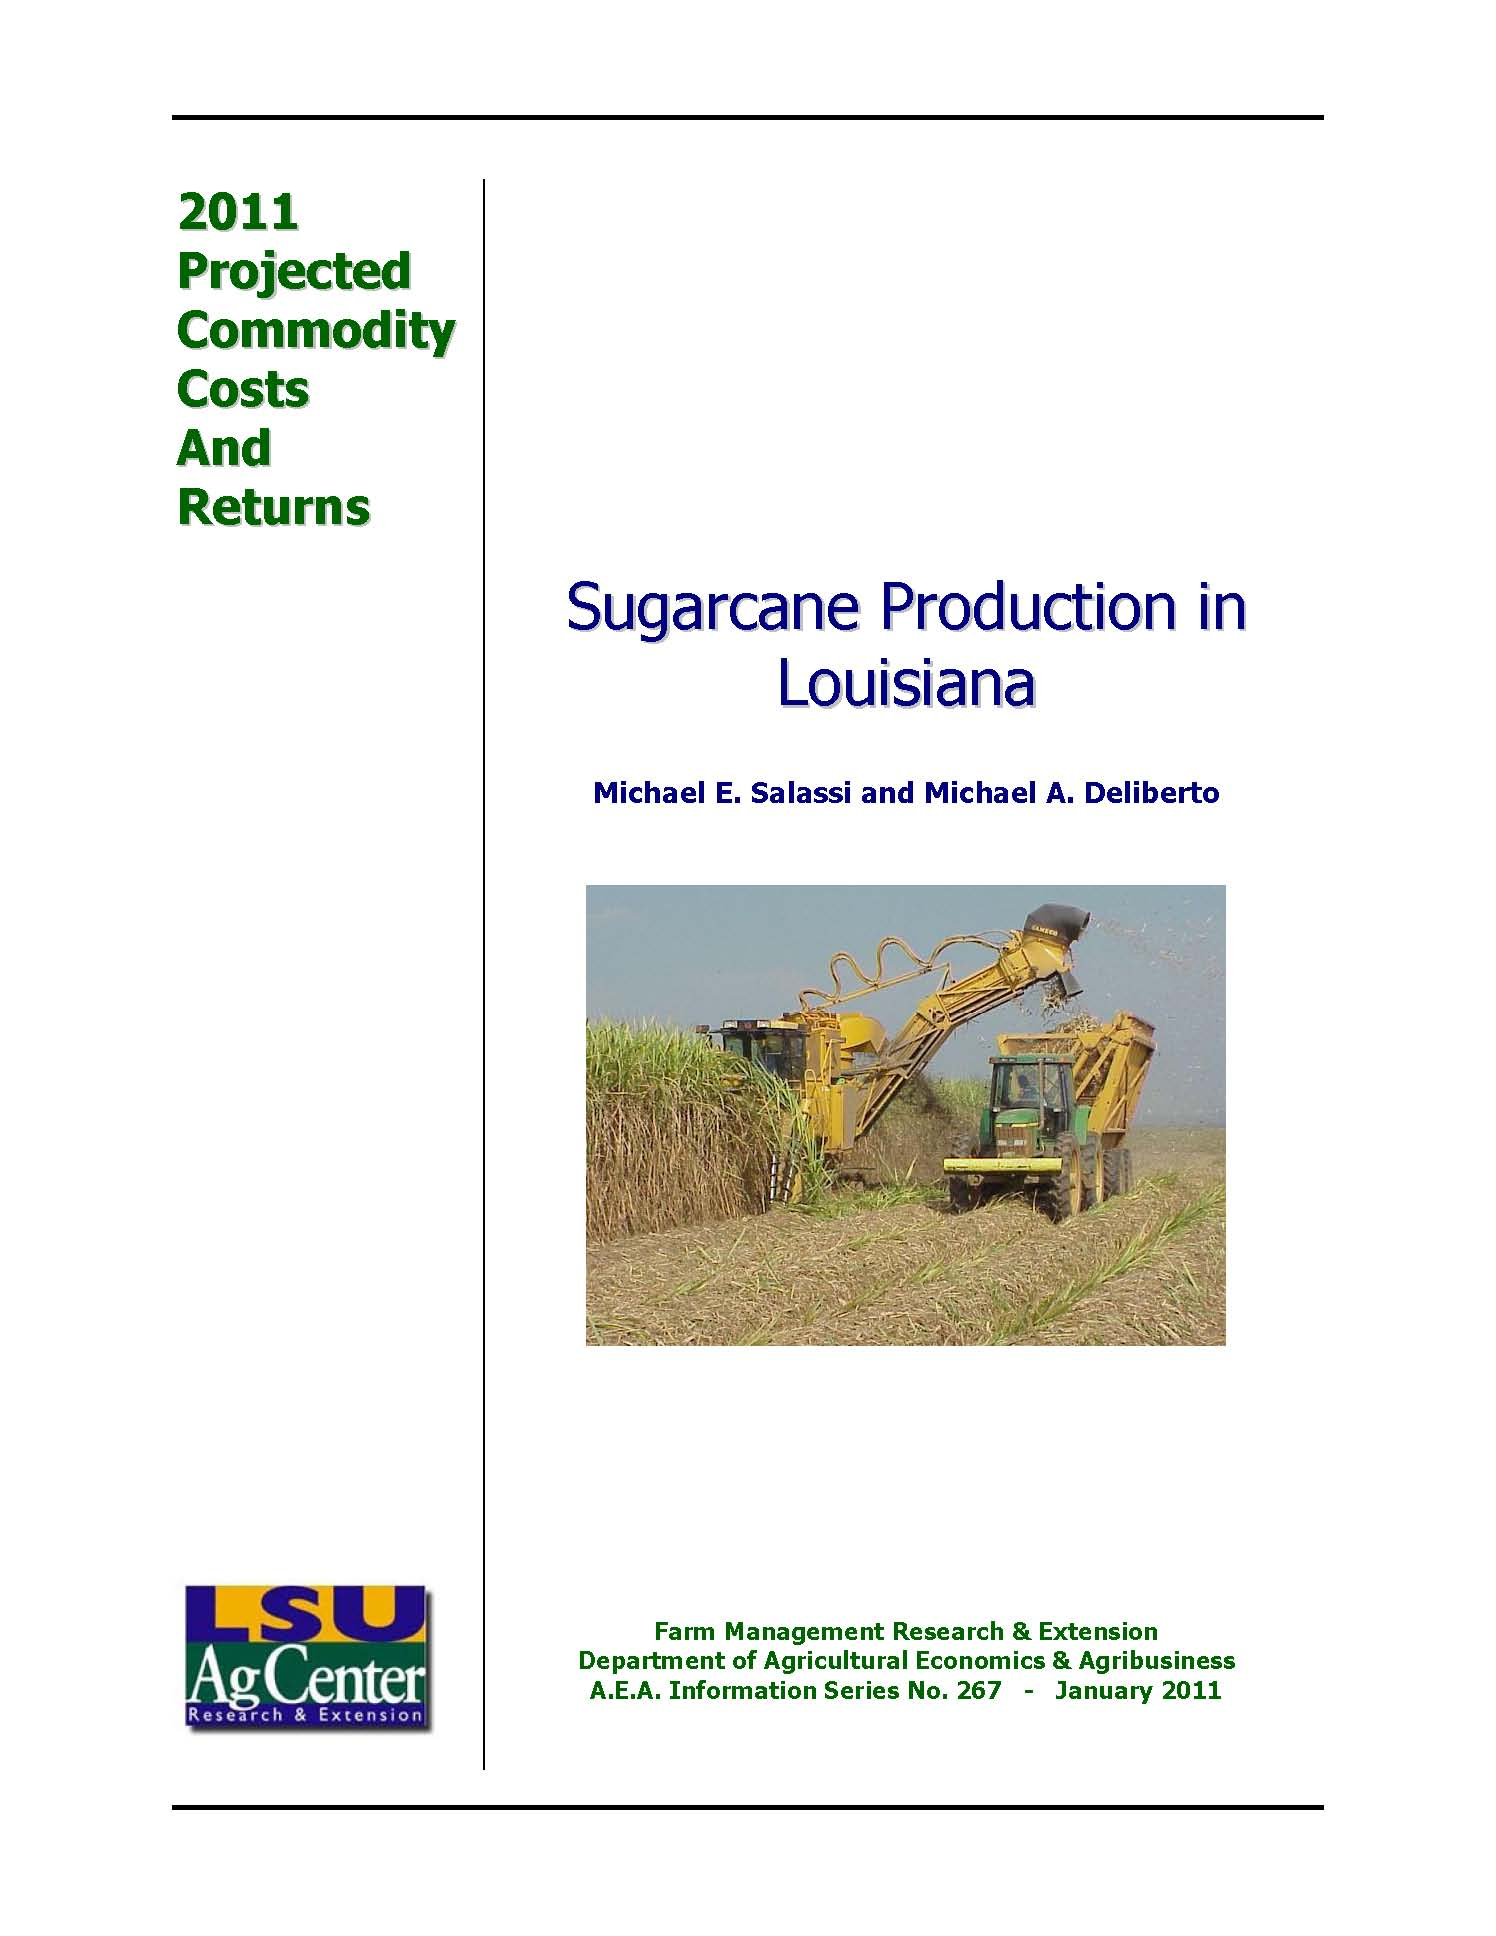 2011 Projected Louisiana Sugarcane Production Costs